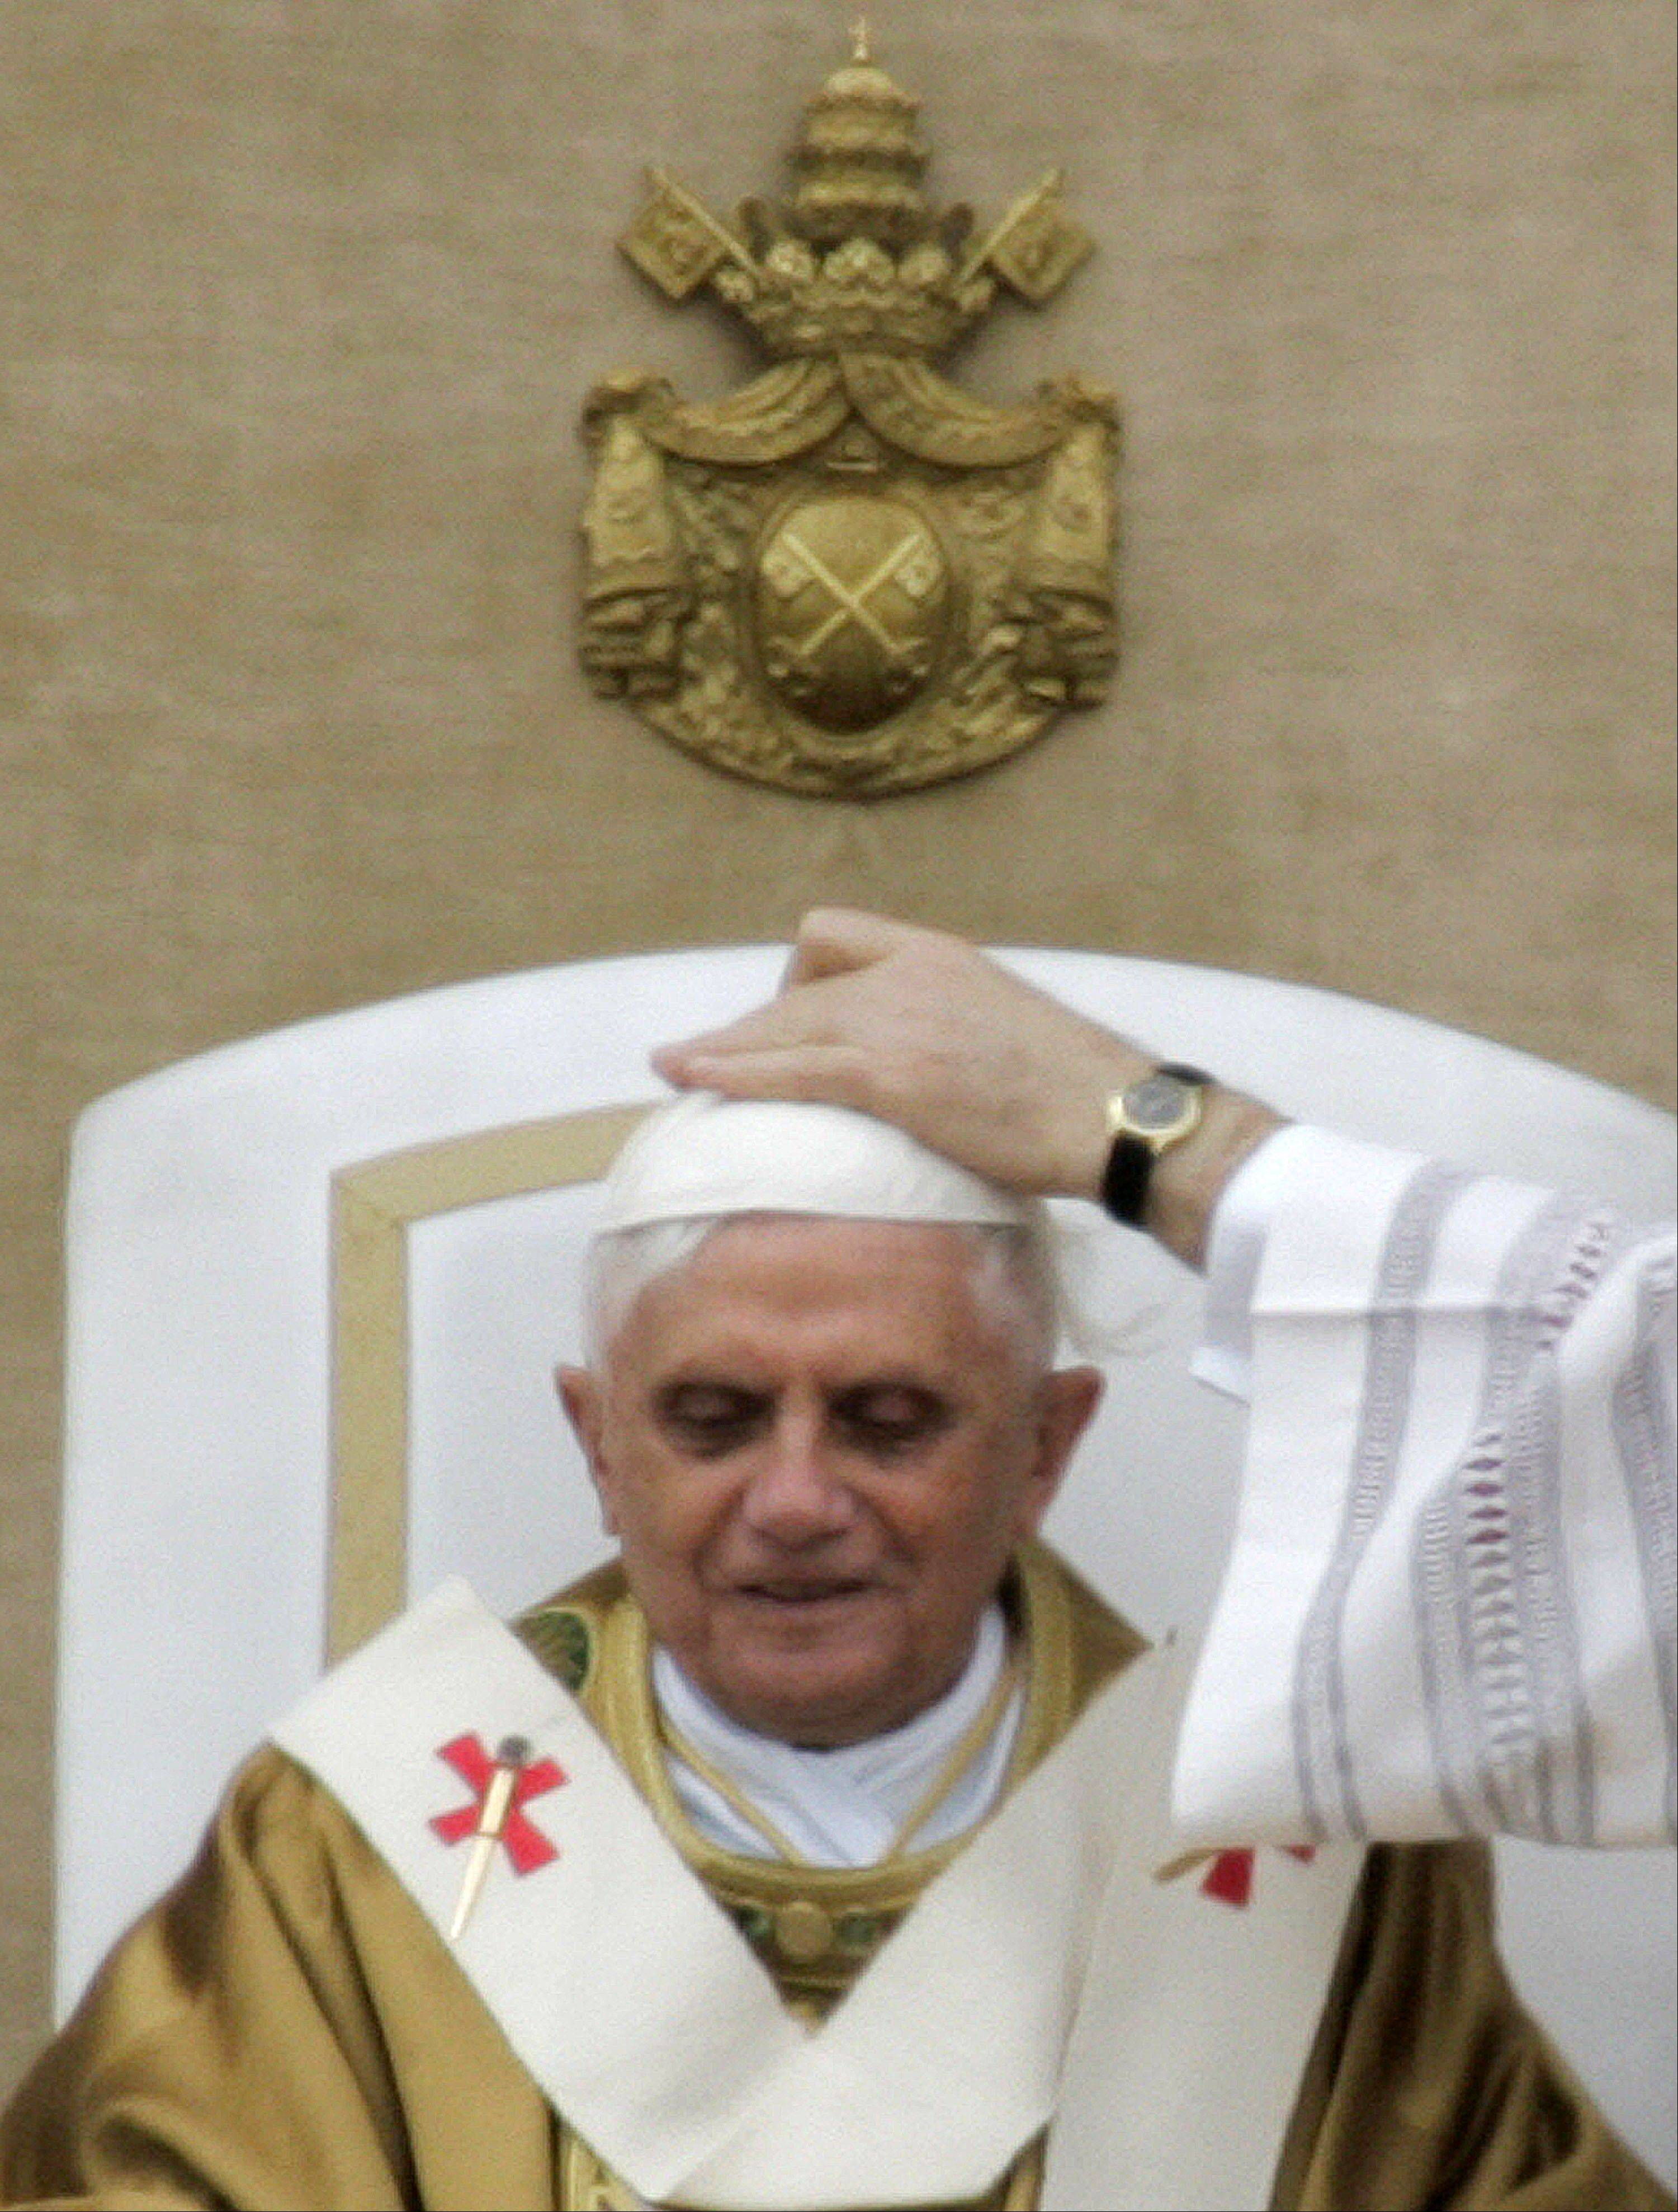 Vatican master of Ceremonies Archbishop Piero Marini, not pictured, adjusts the skullcap of Pope Benedict XVI during his installment Mass in St. Peter's Square at the Vatican.